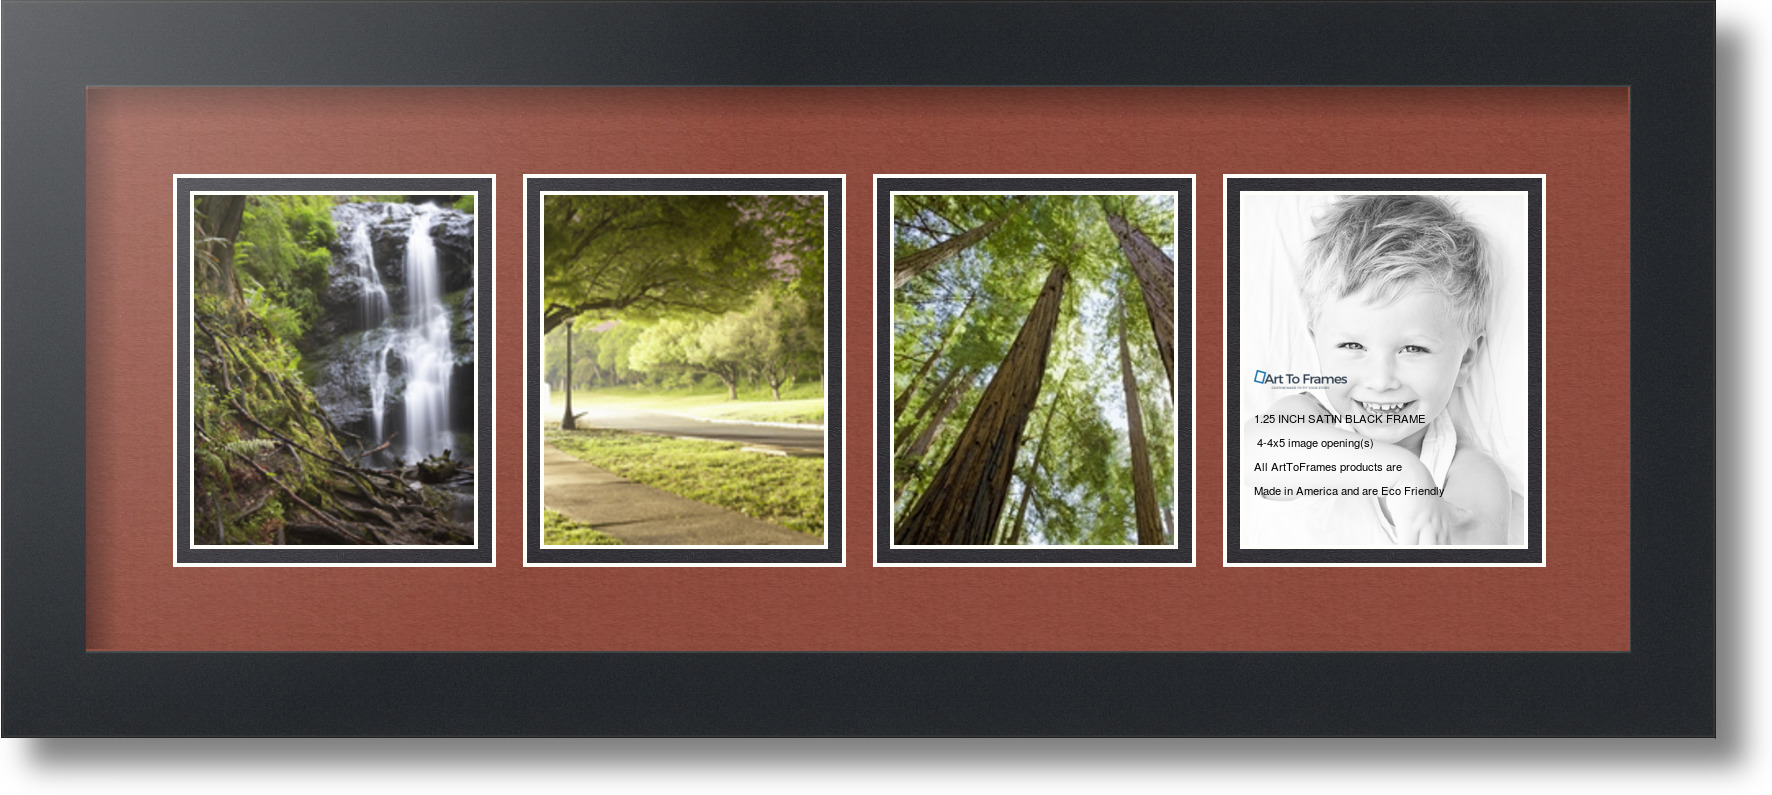 5x7 Collage Frame With 6 Openings.Picture Frames: Collage Picture ...